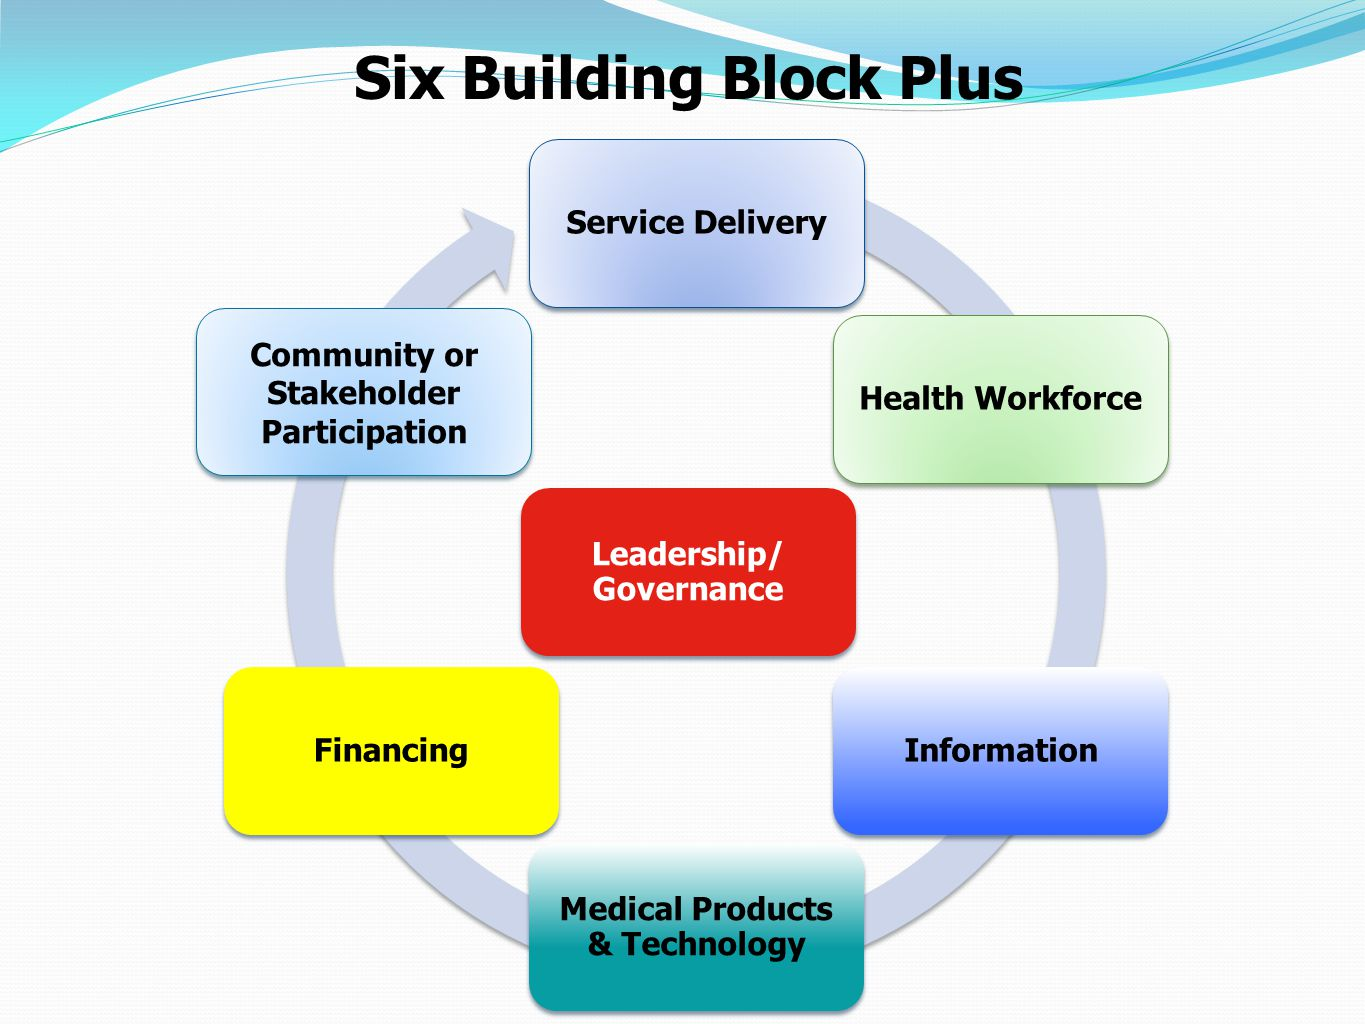 Six Building Block Plus